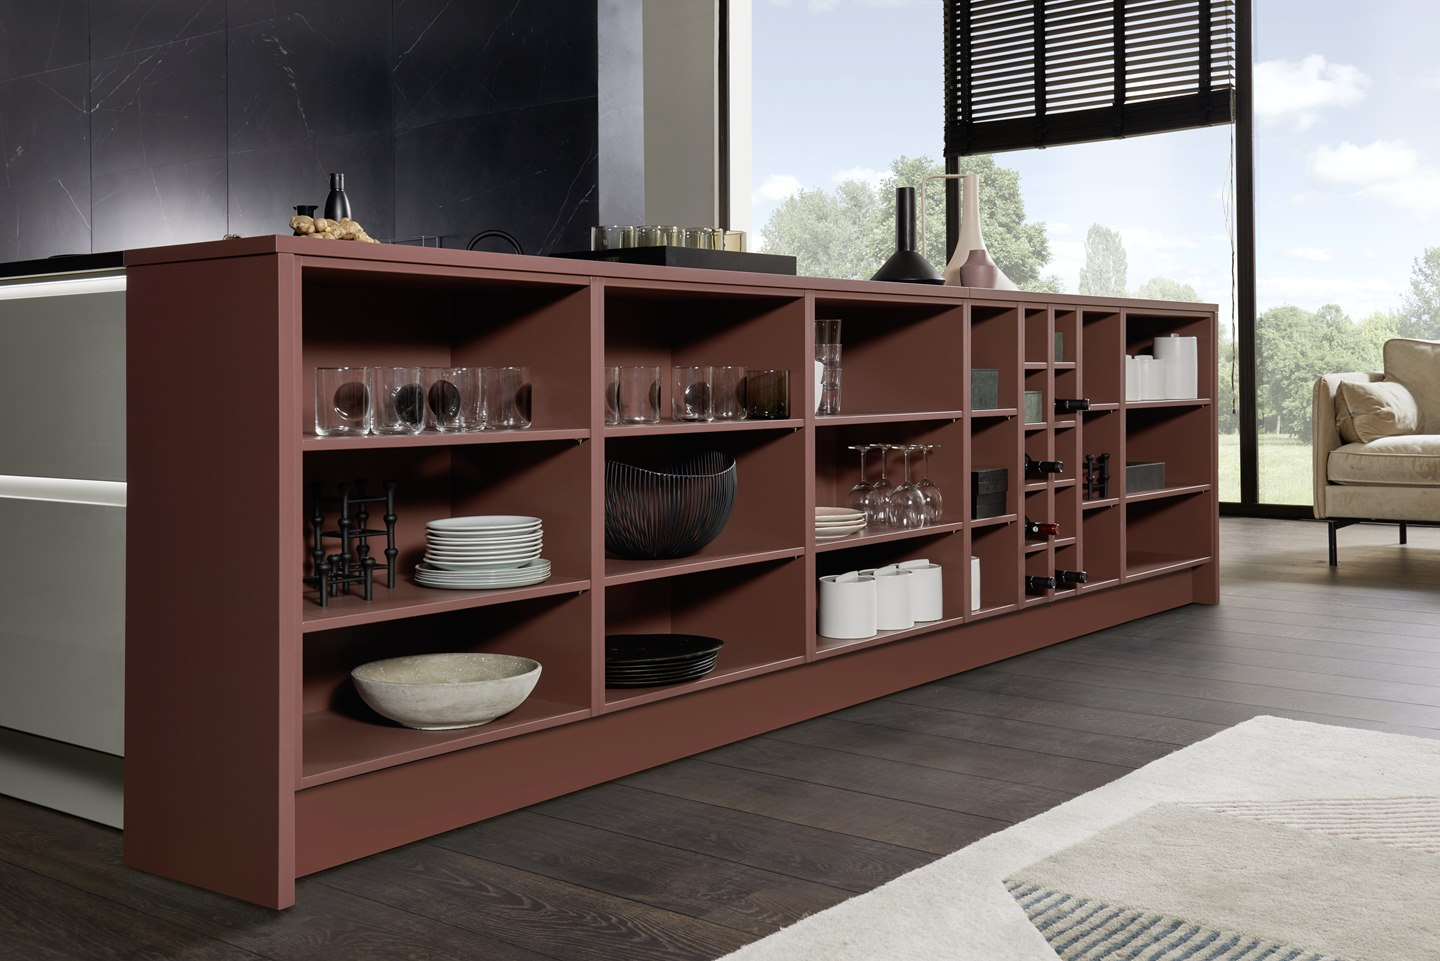 A great eye-catcher: open shelf units